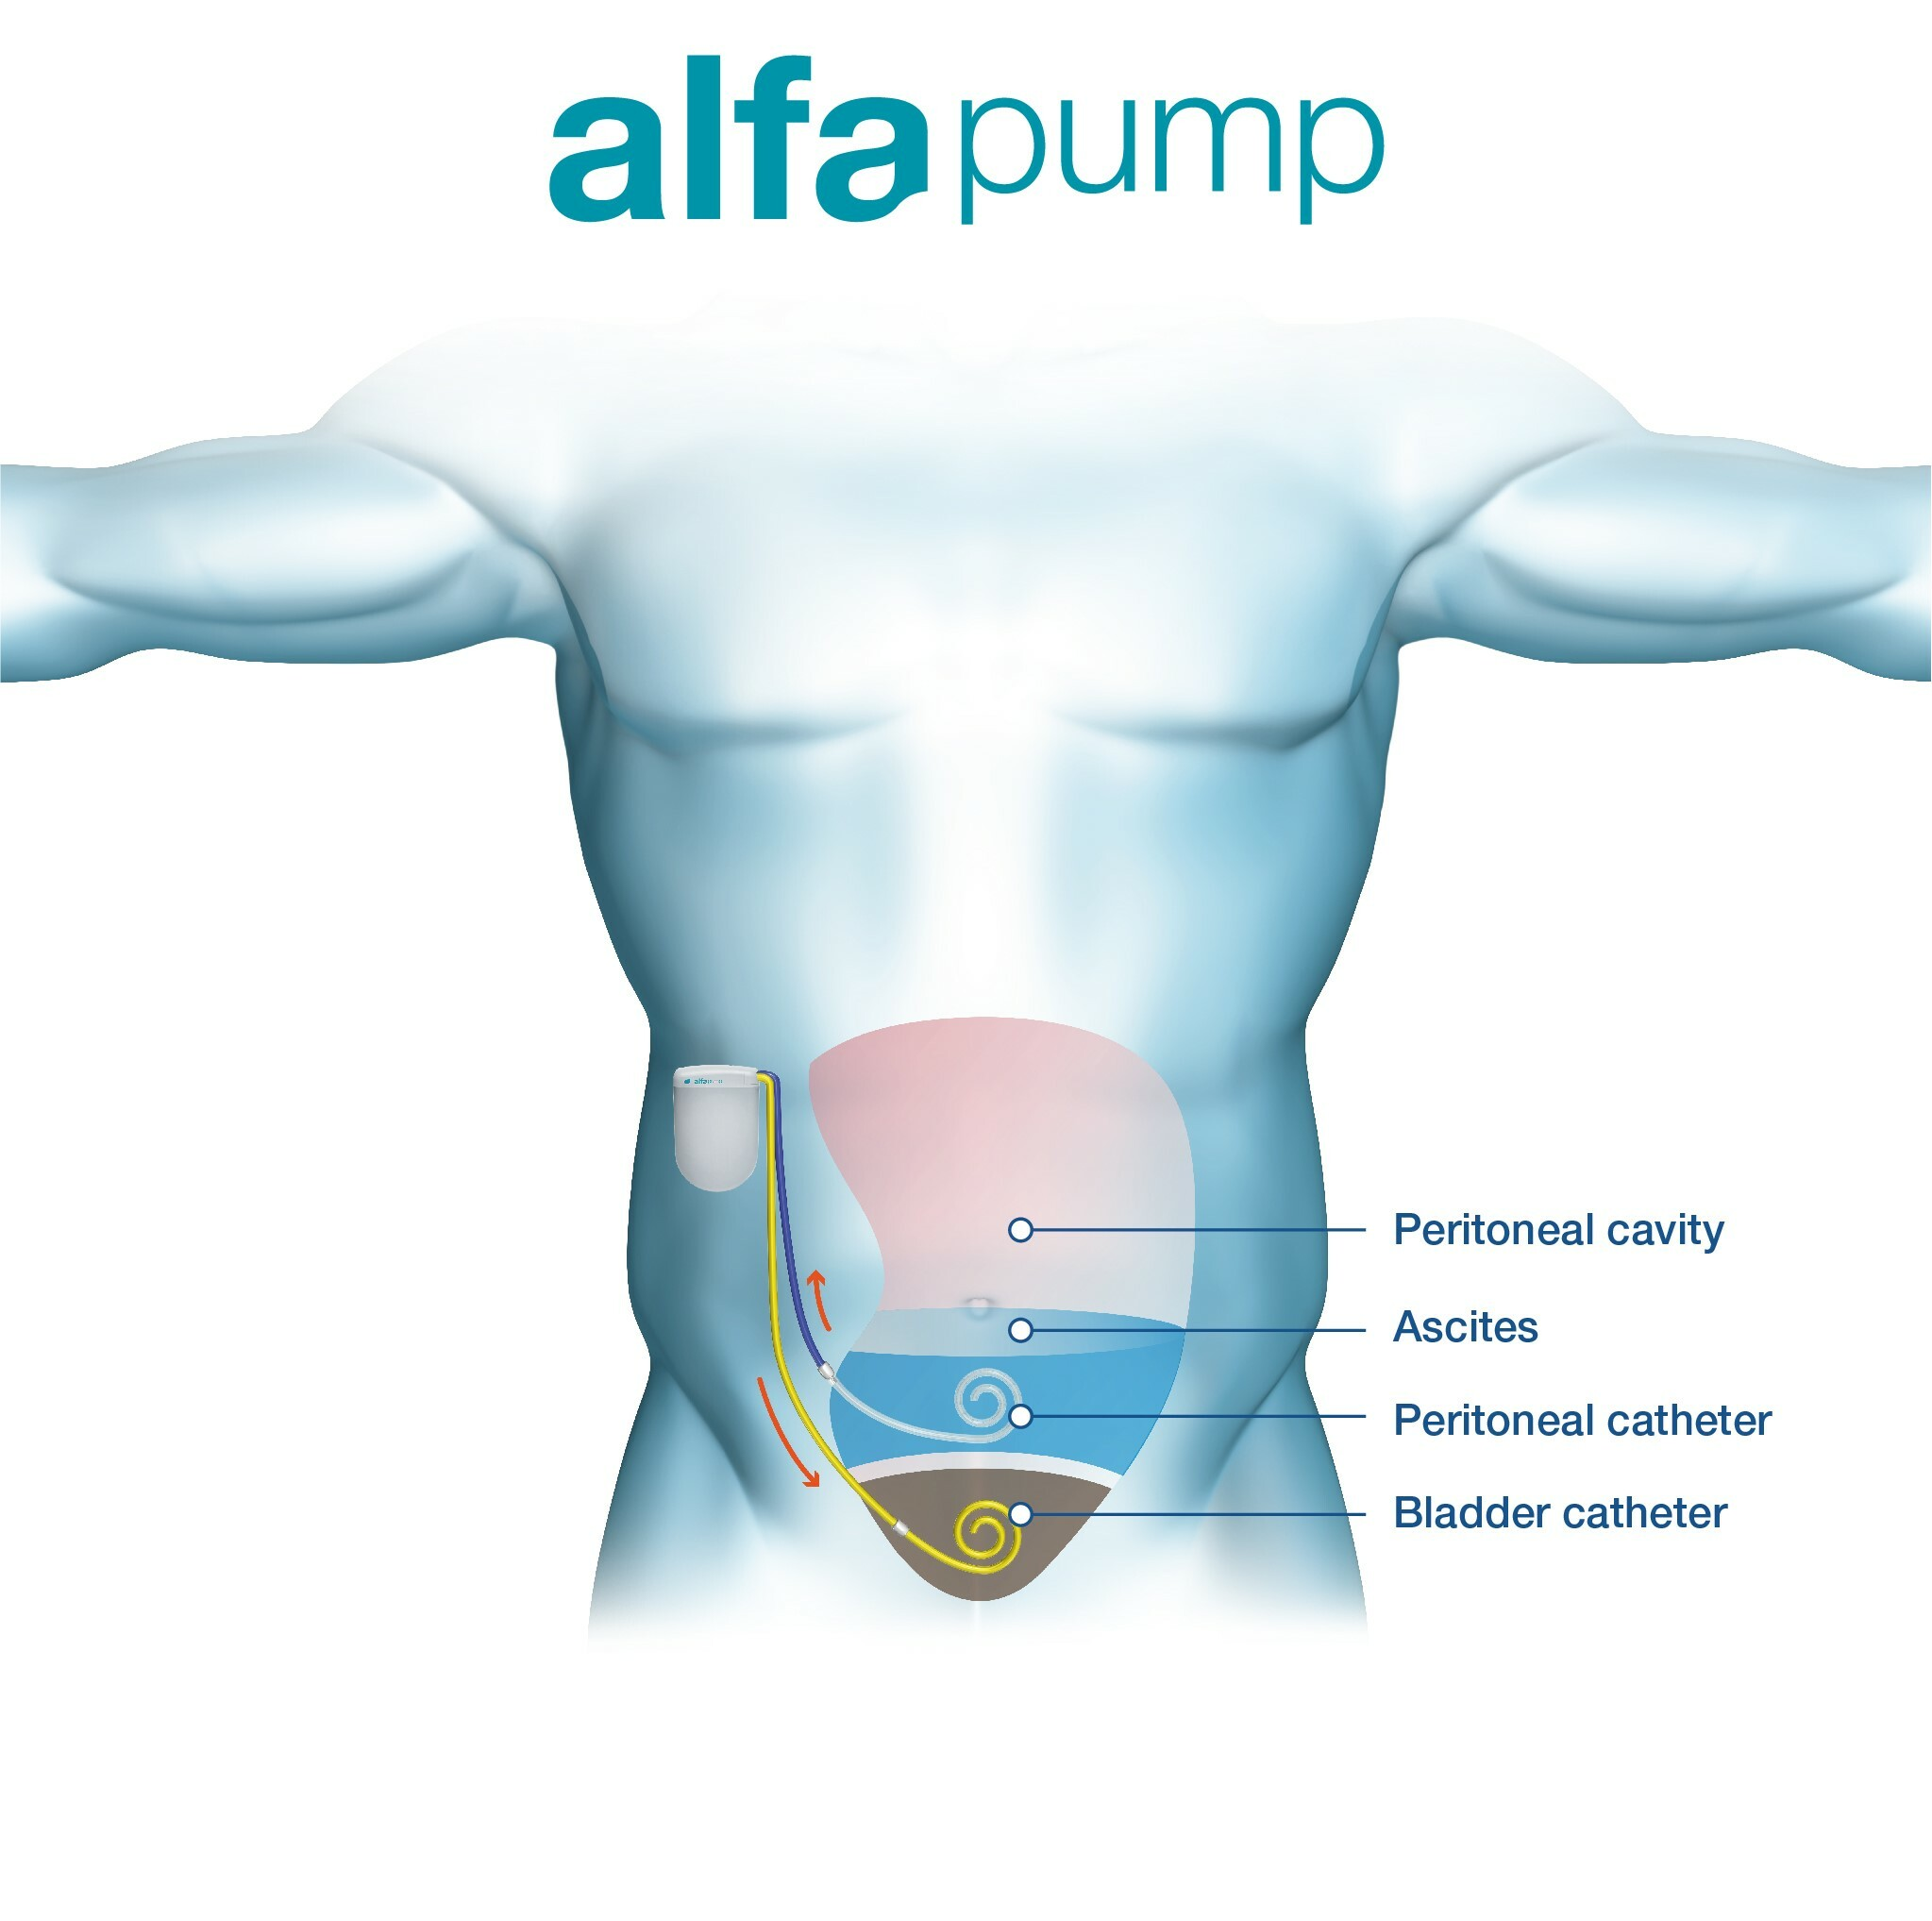 Torso_with_implanted_alfapump_and_explanation